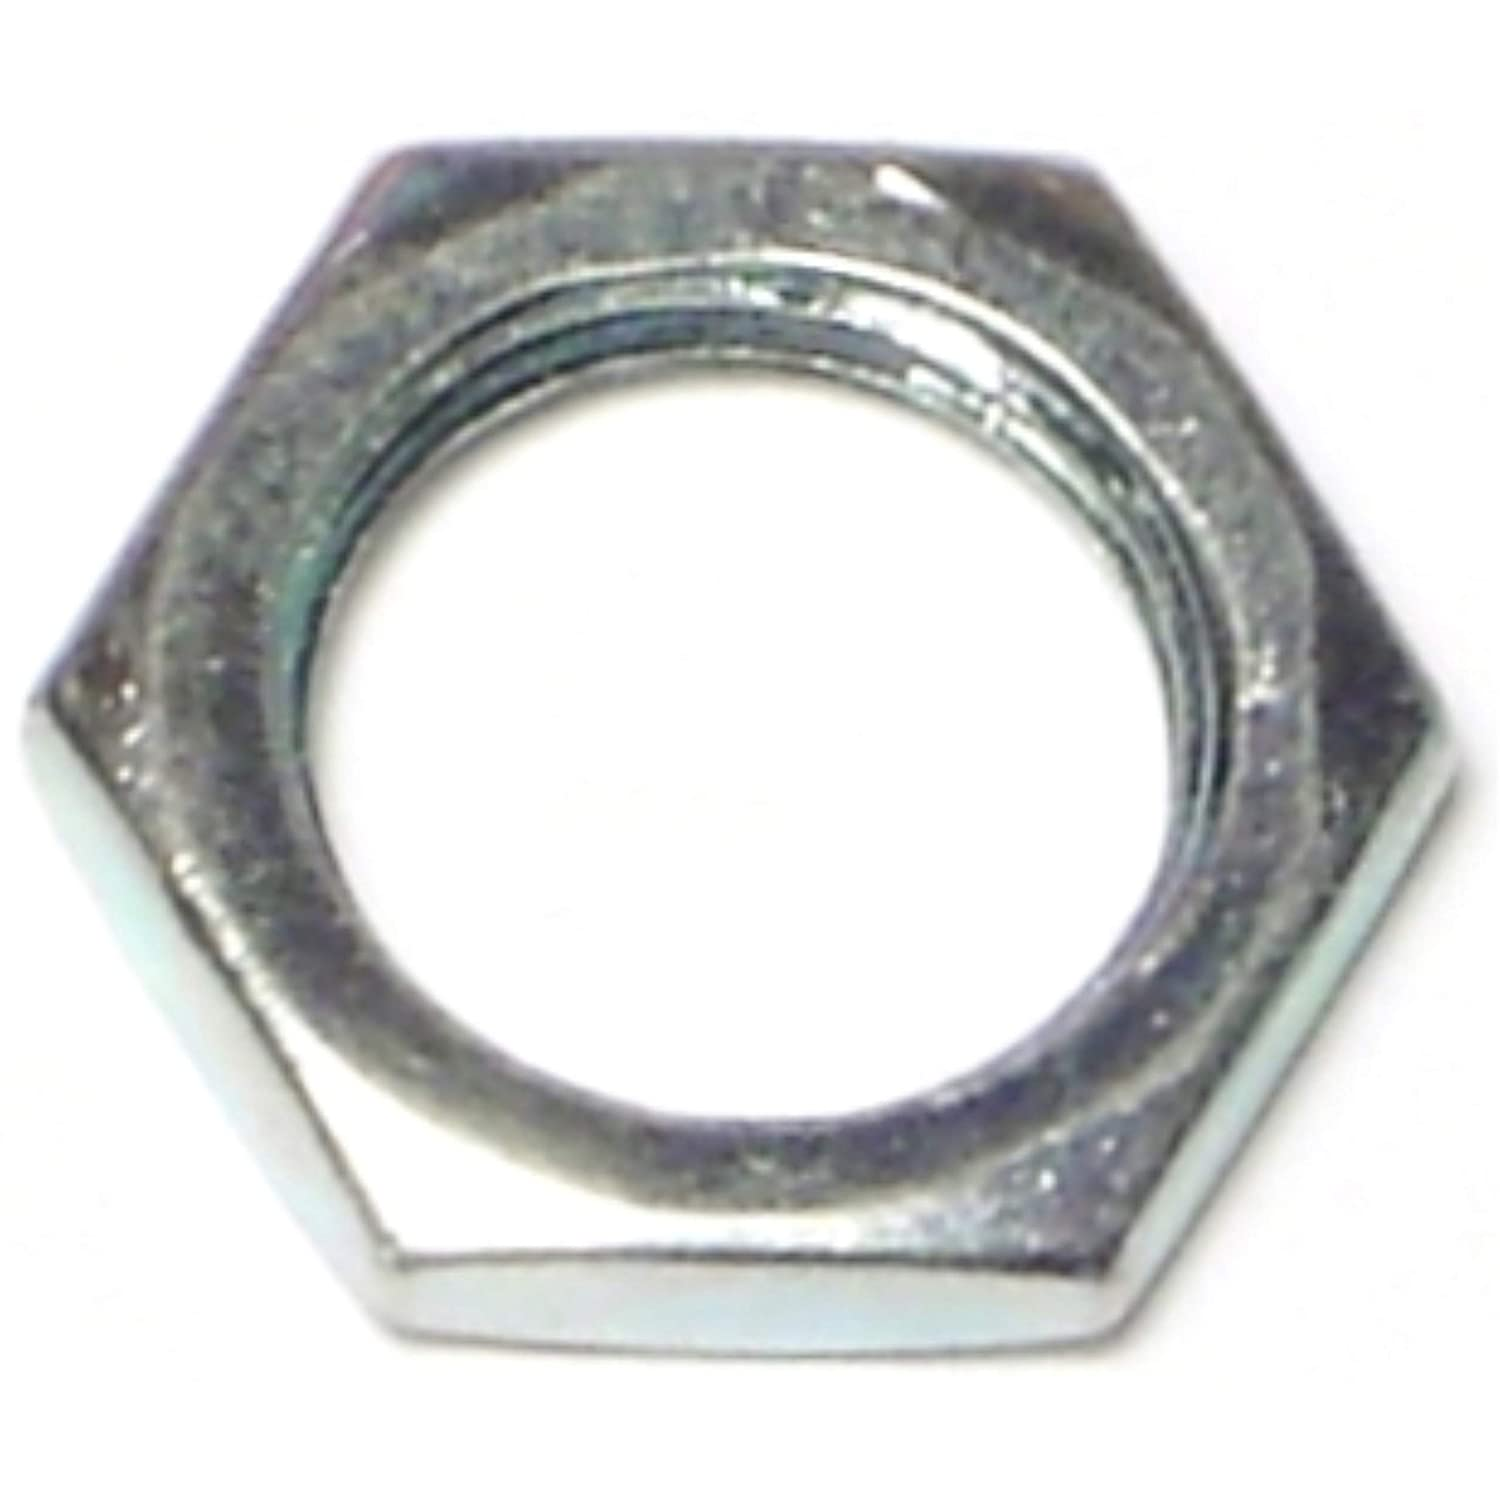 Hard-to-Find Fastener 014973142780 Hex Locknuts, 1/4 IP x 11/16, Piece-10